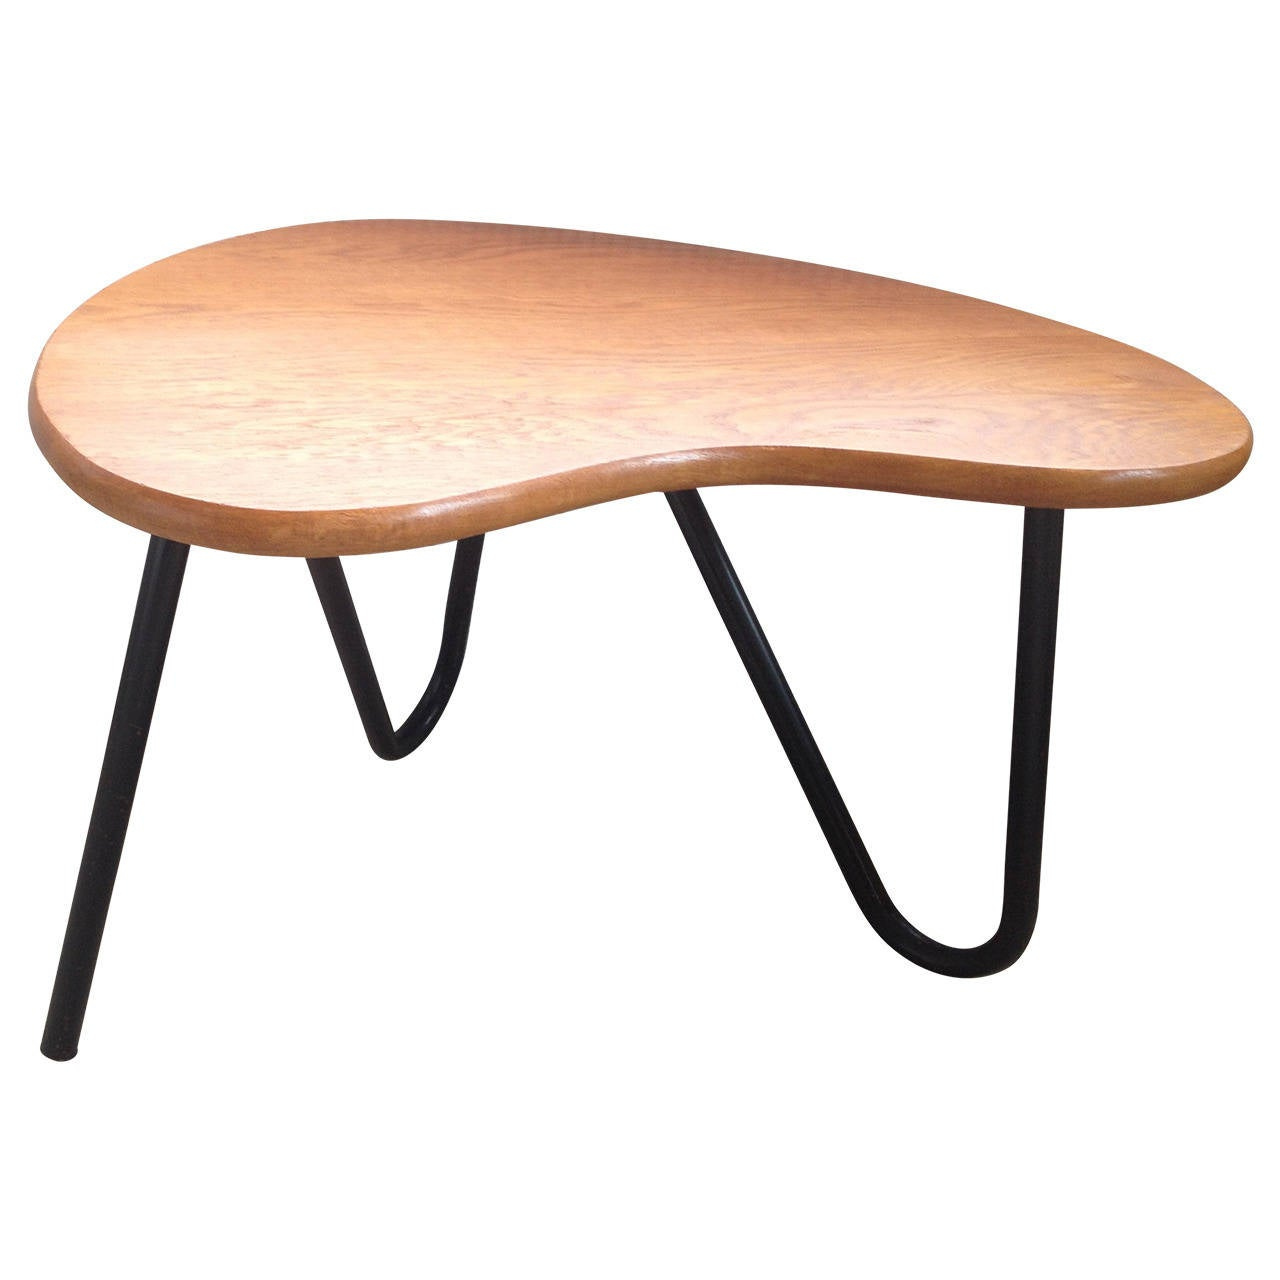 Prefacto Table by Pierre Guariche 1